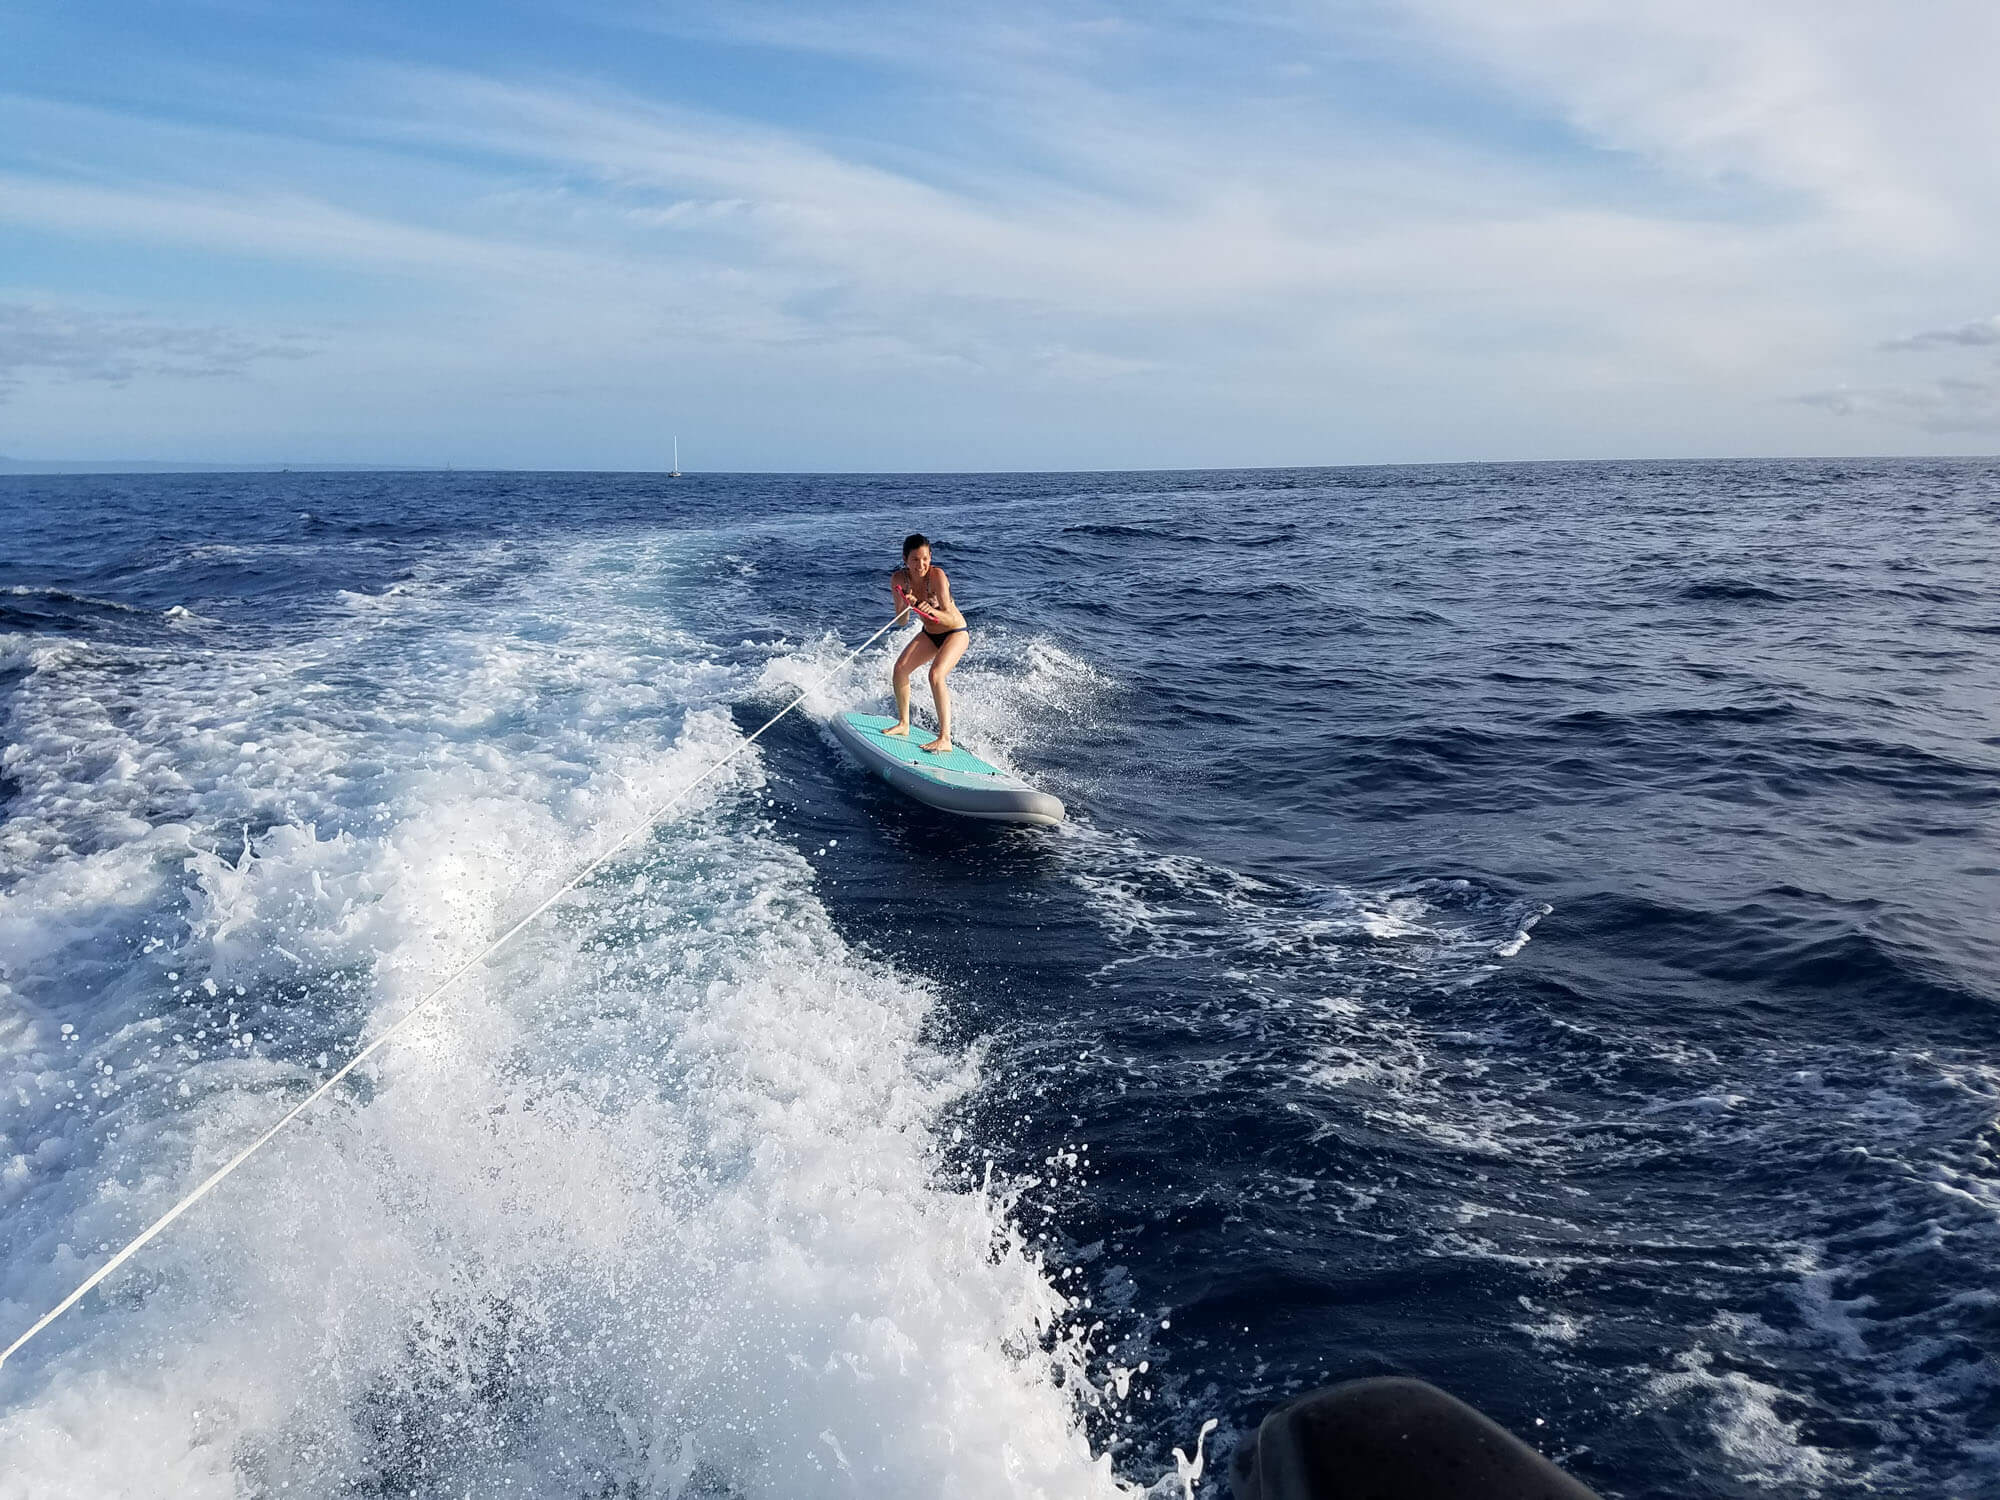 Kristina Surfing Behind the Boat